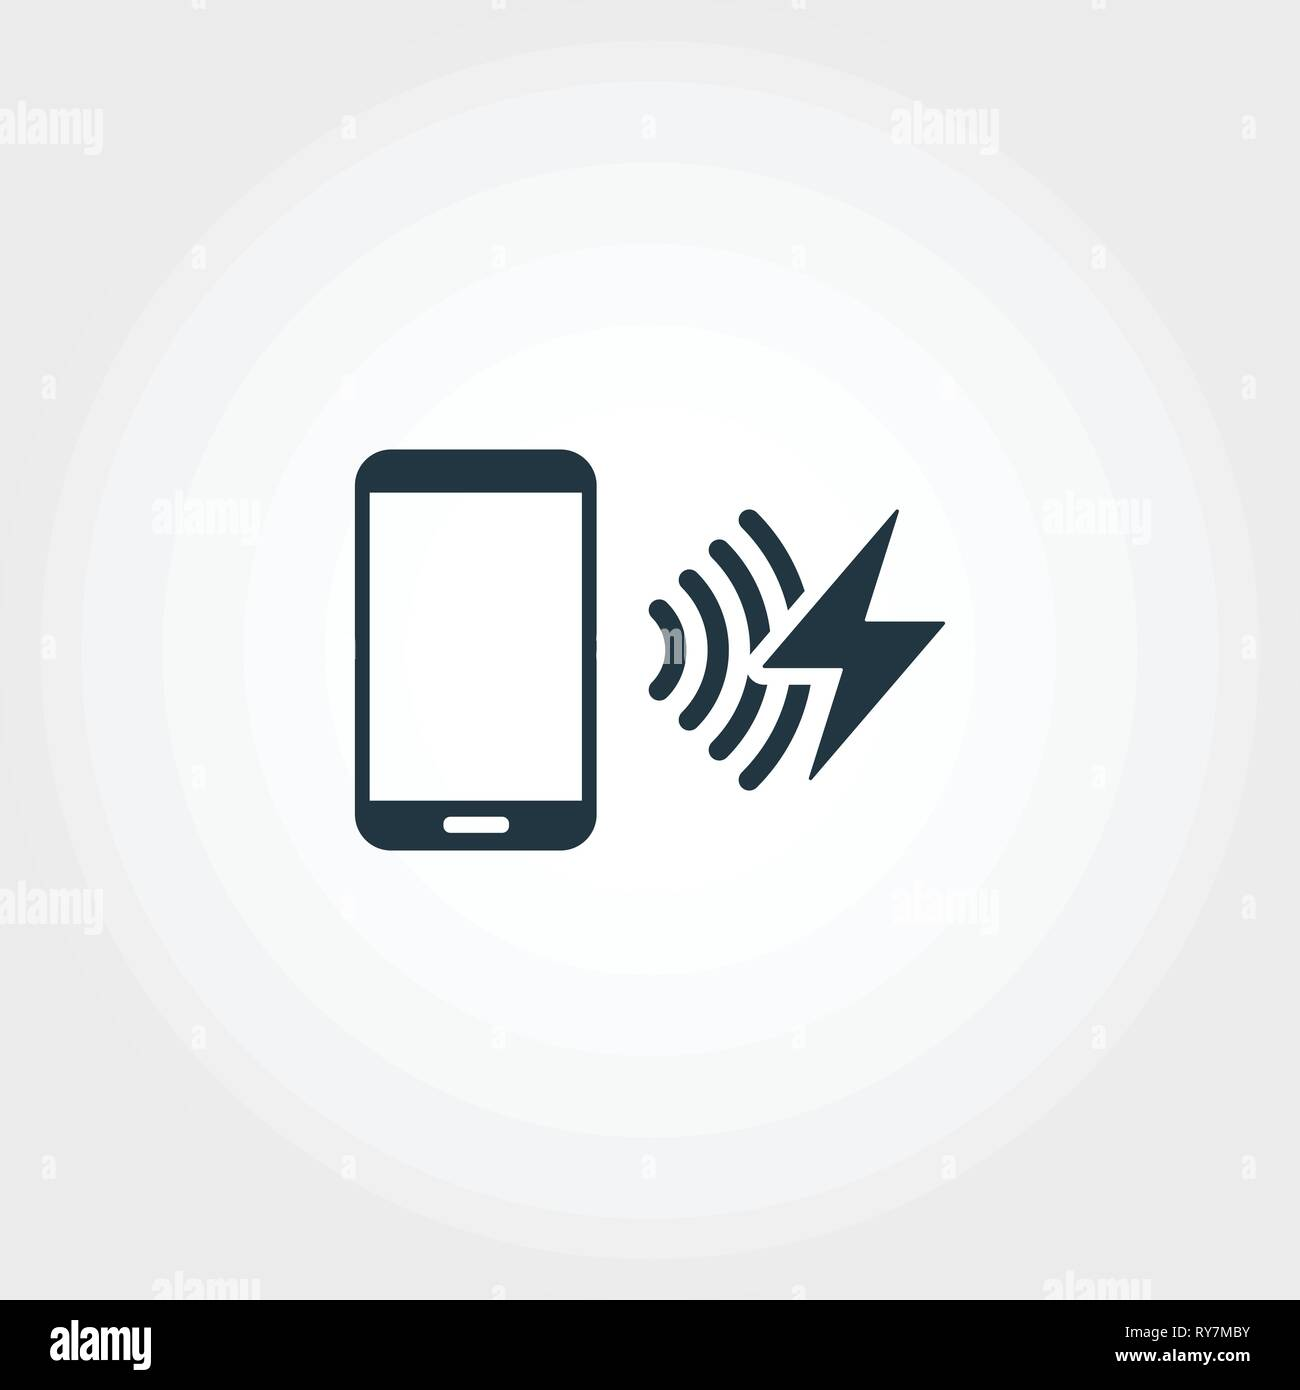 Recharge Network creative icon. Monochrome style design from urbanism icons collection. Recharge Network icon for web design, apps, software, print - Stock Vector